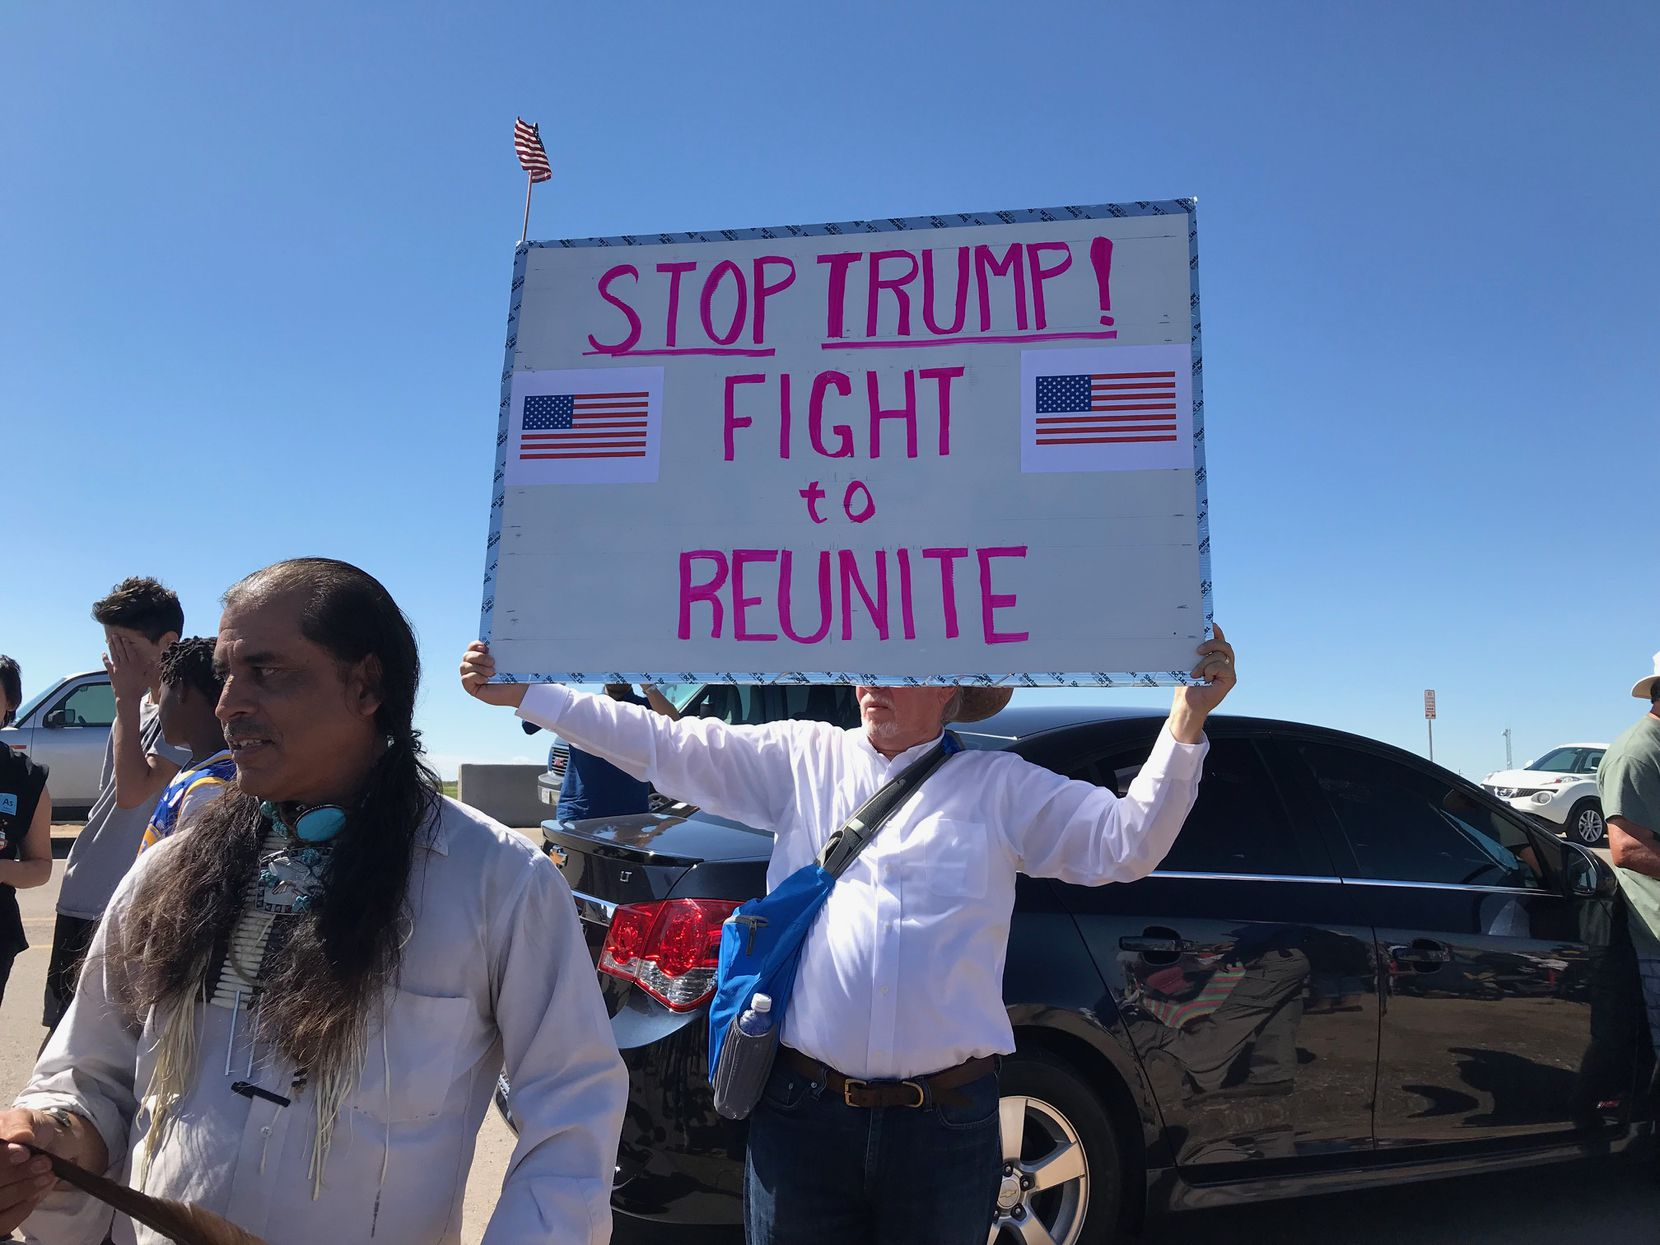 Marchers protest the Trump administration's policy of separating children from their parents as families arrive at the nation's southern border. (Alfredo Corchado/Dallas Morning News)